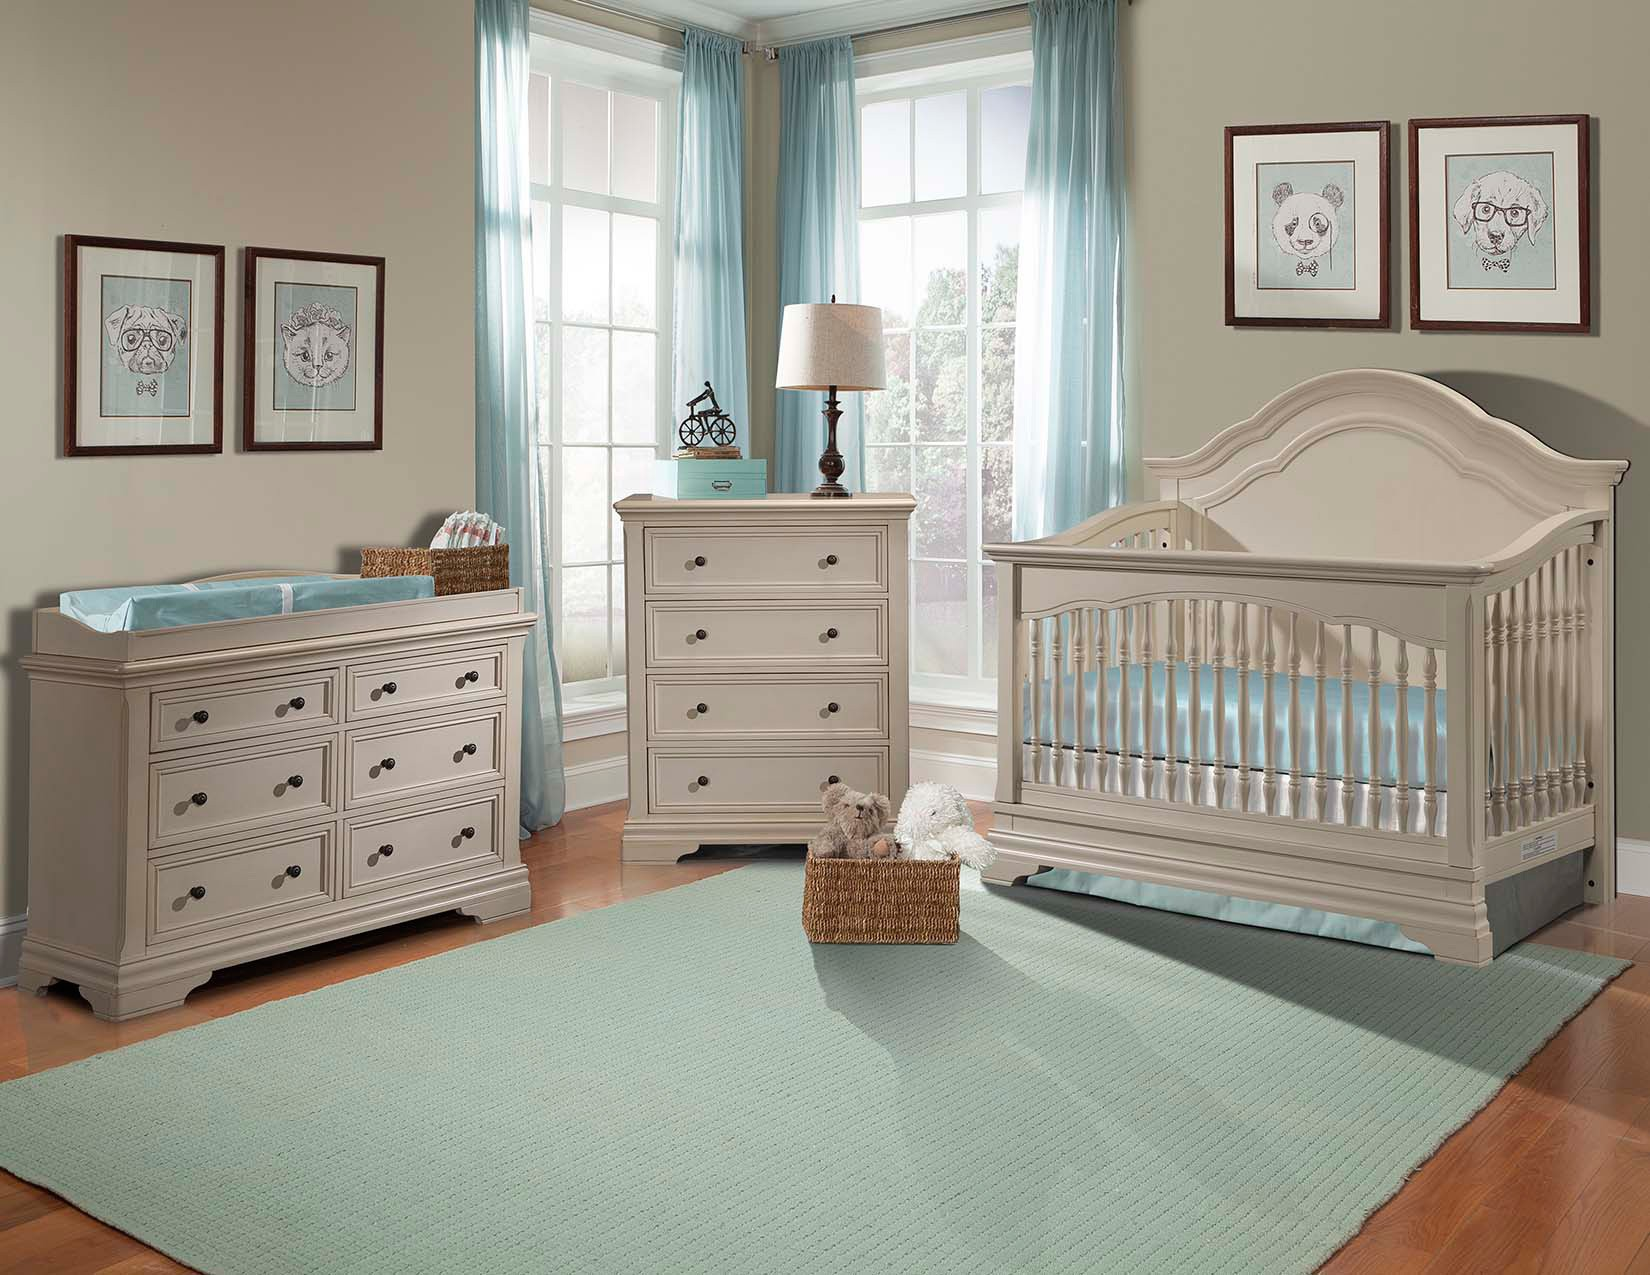 Baby furniture sets are cute